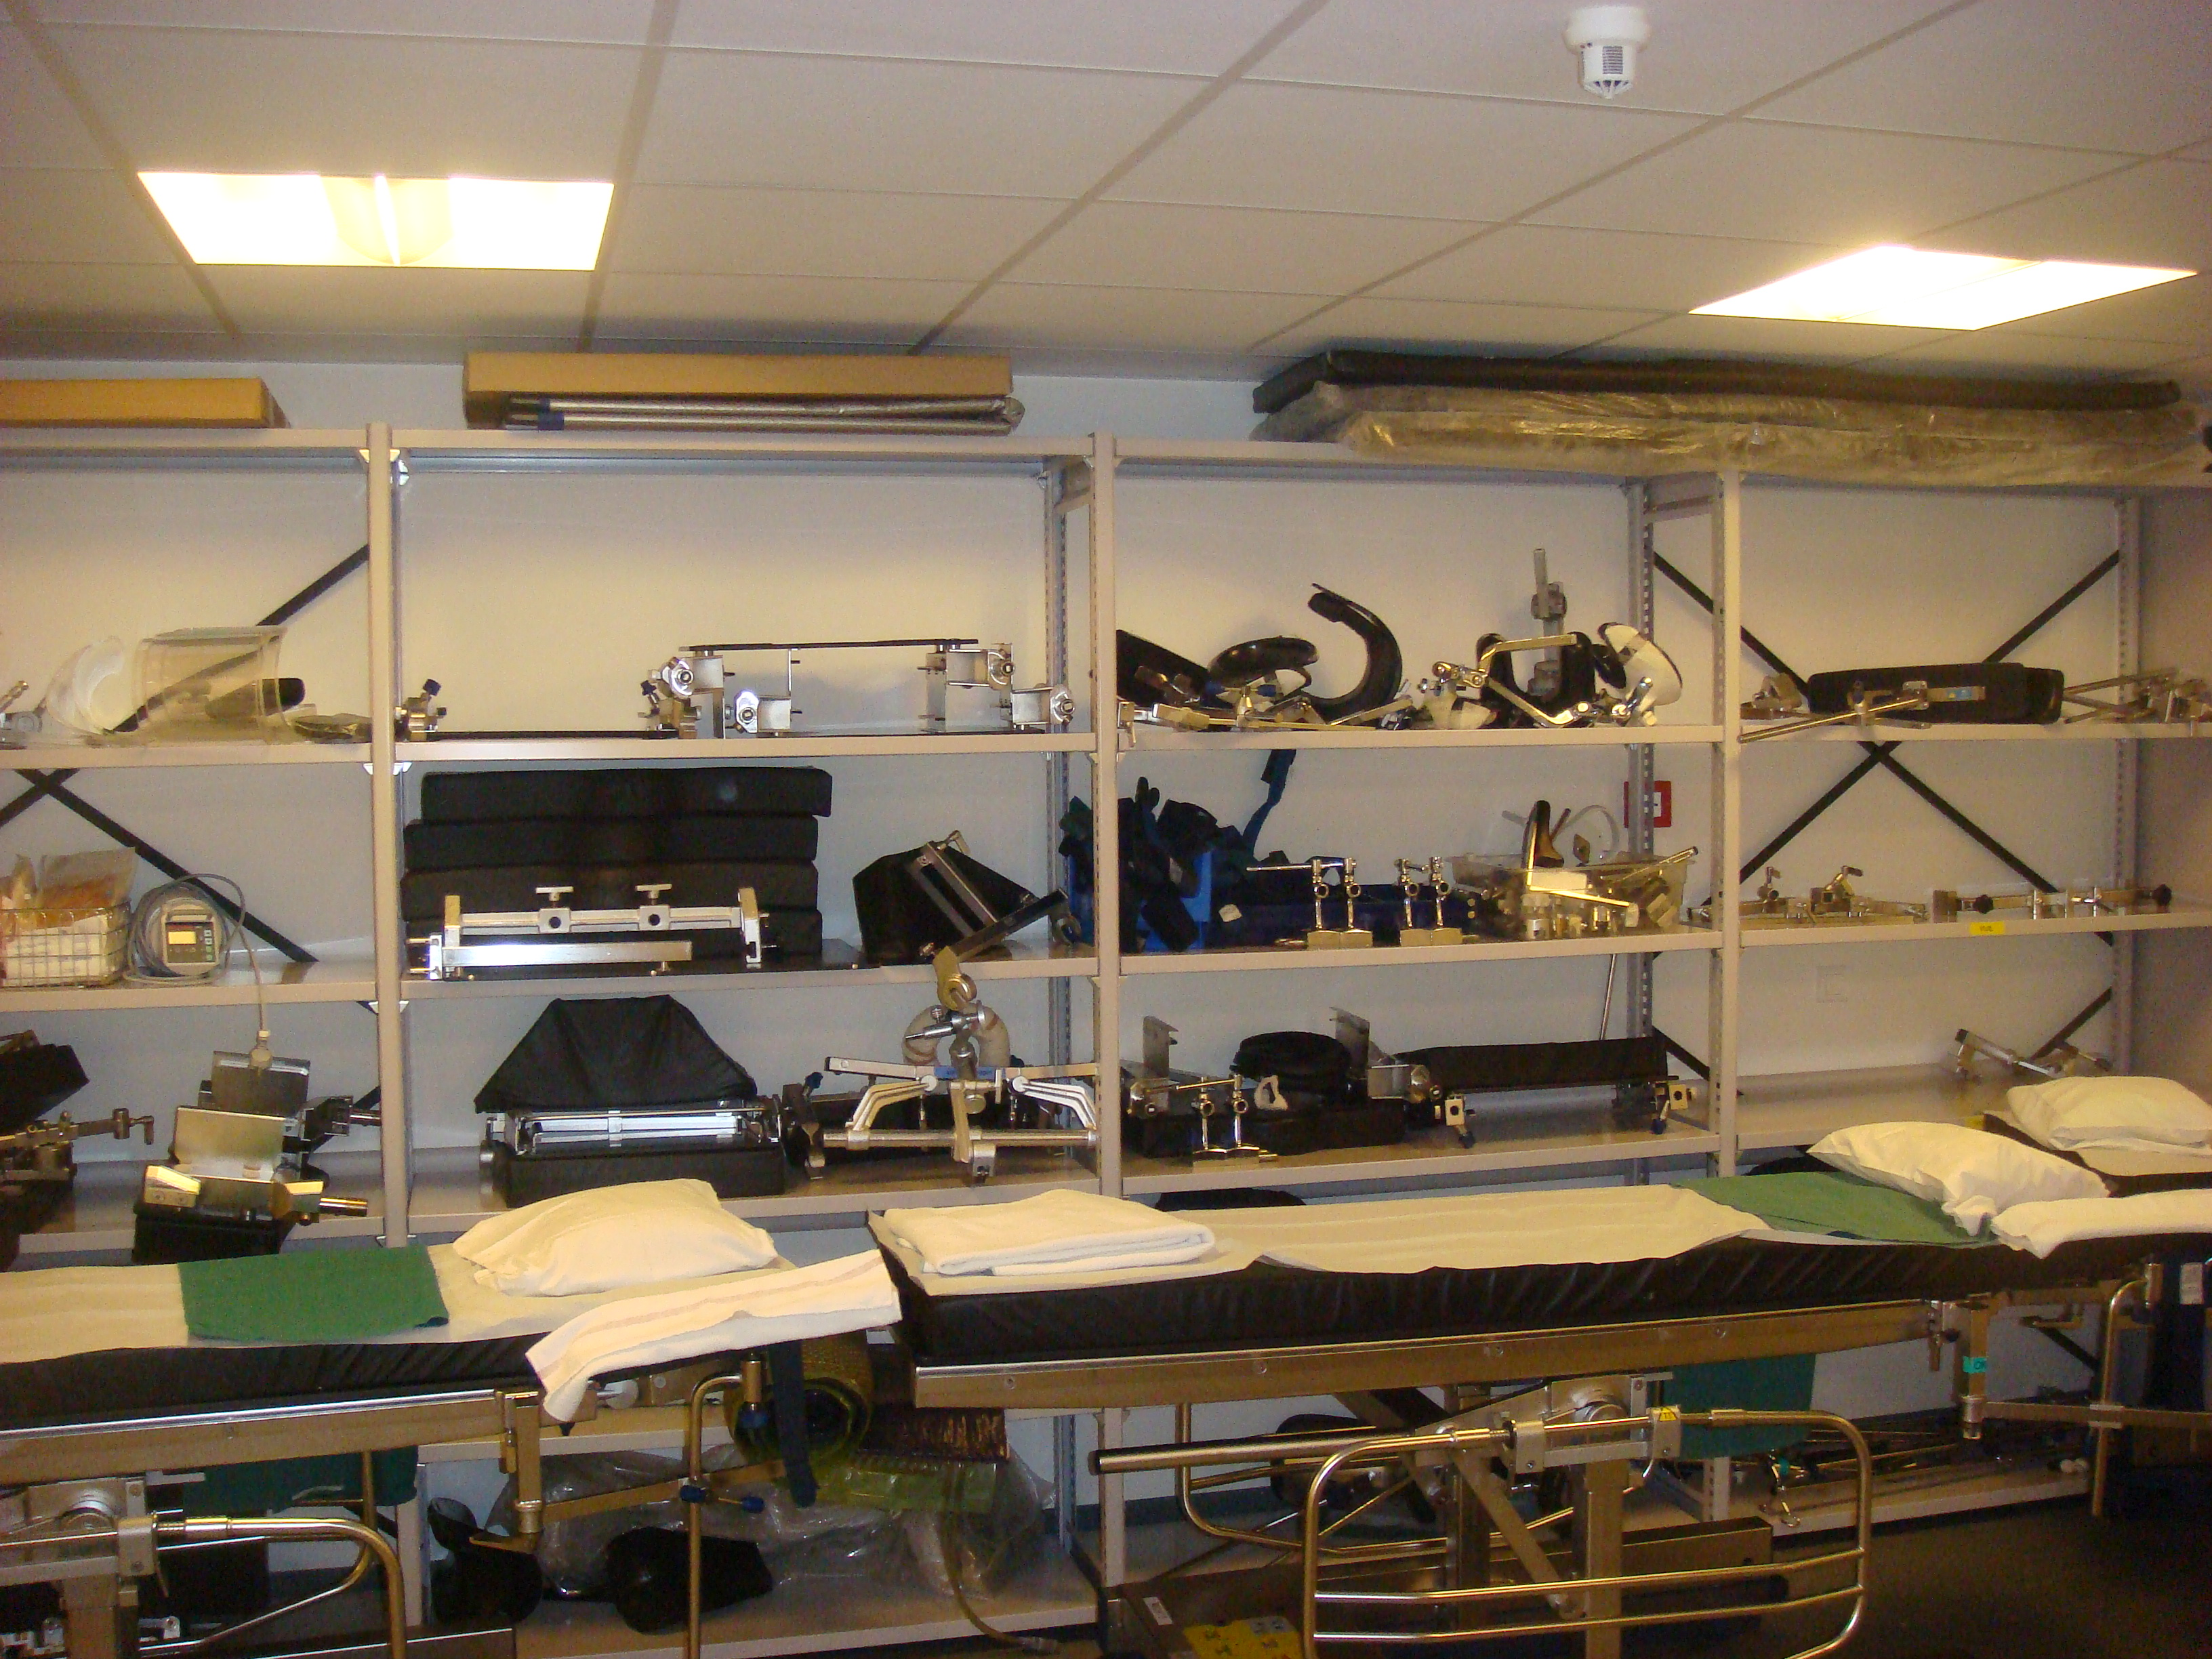 File:Operating Room Store.JPG - Wikimedia Commons